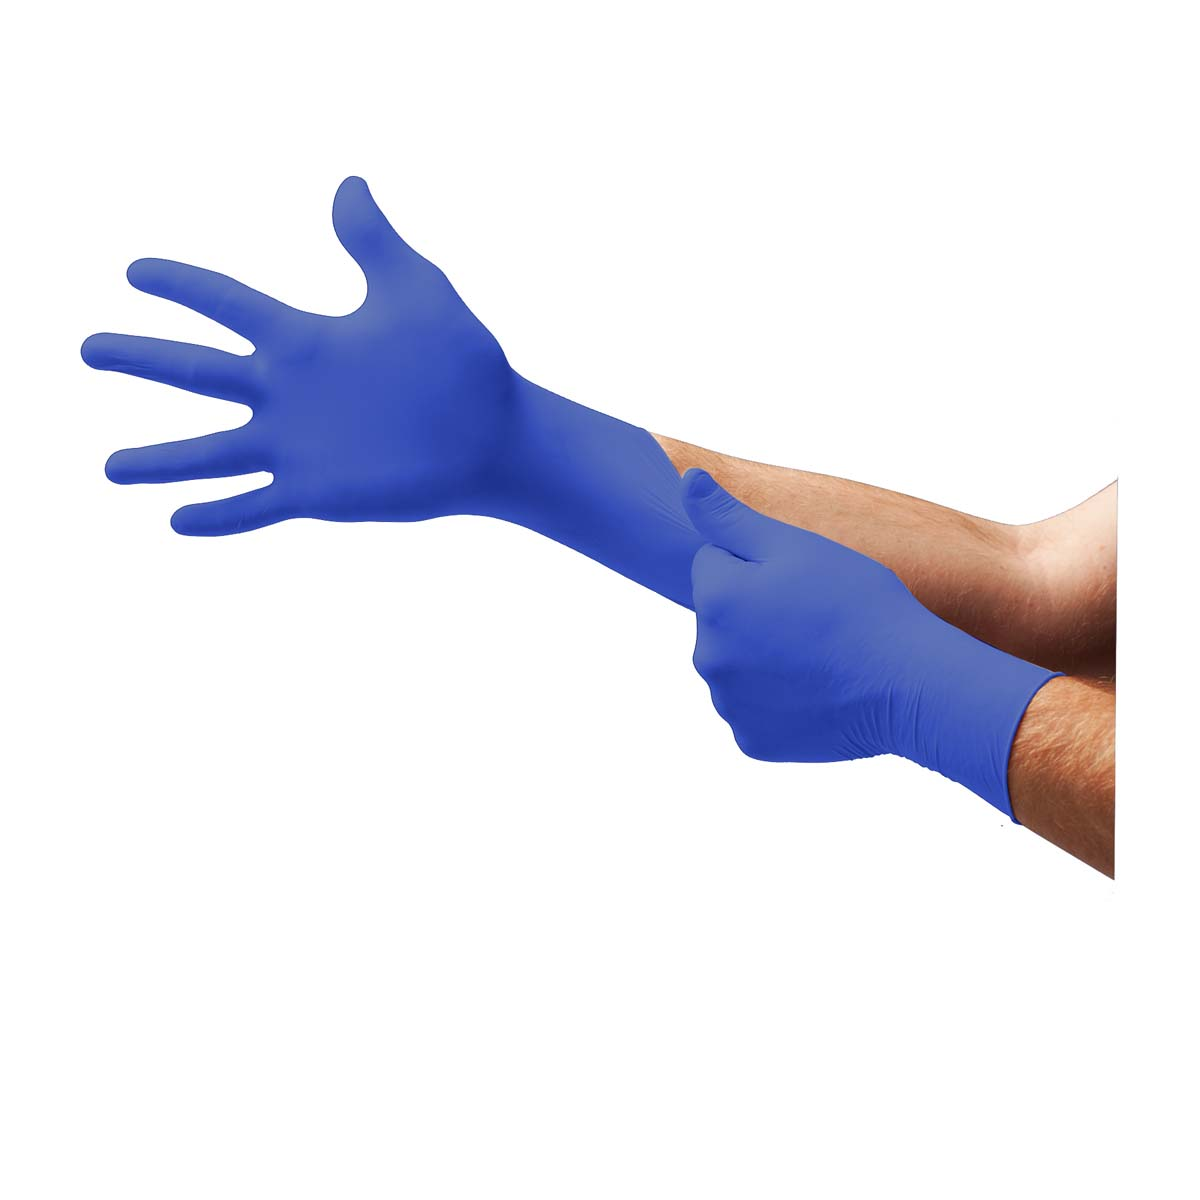 N272, BLUE NITRILE, POWDER-FREE INDUSTRIAL-GRADE GLOVES, NON-STERILE, AMBIDEXTROUS, FULLY TEXTURED, BEADED CUFF,  FOR SINGLE USE ONLY, NON-LATEX, FOR NON-MEDICAL USE, SZ M